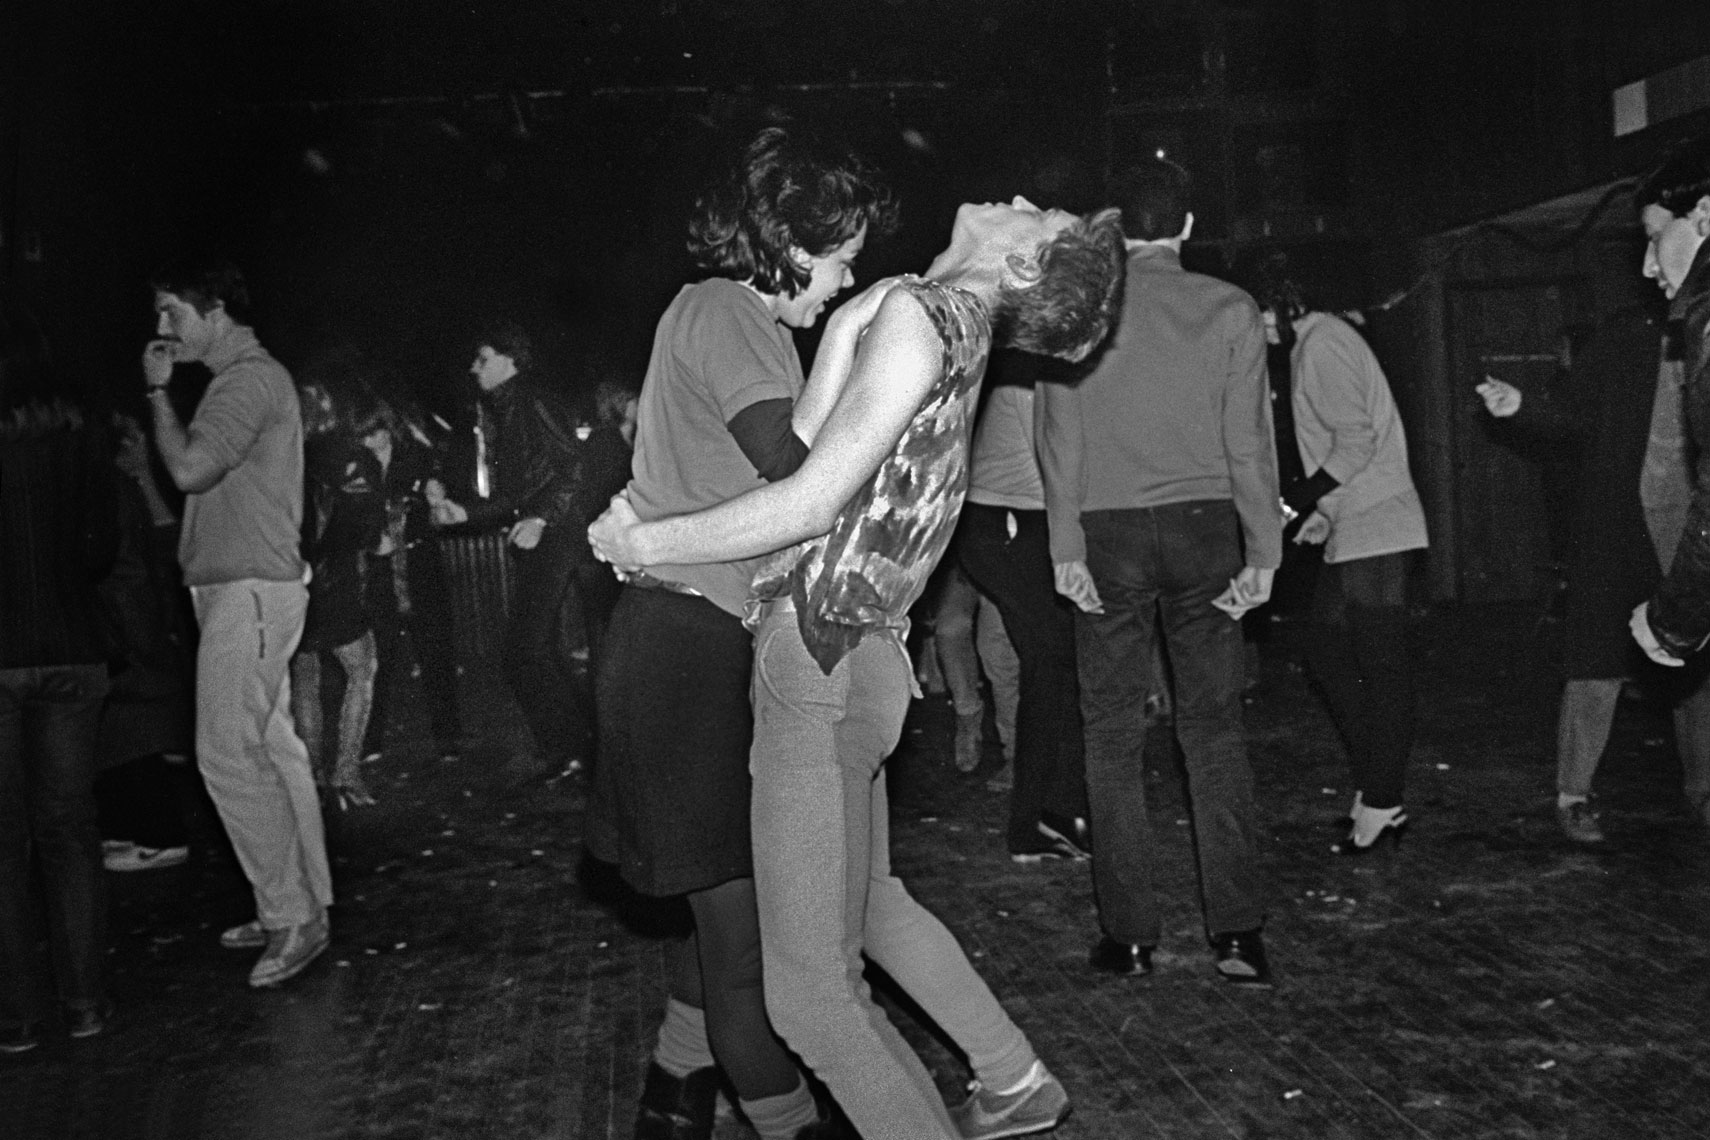 28_Irving-Plaza_Dancefloor_0381.jpg